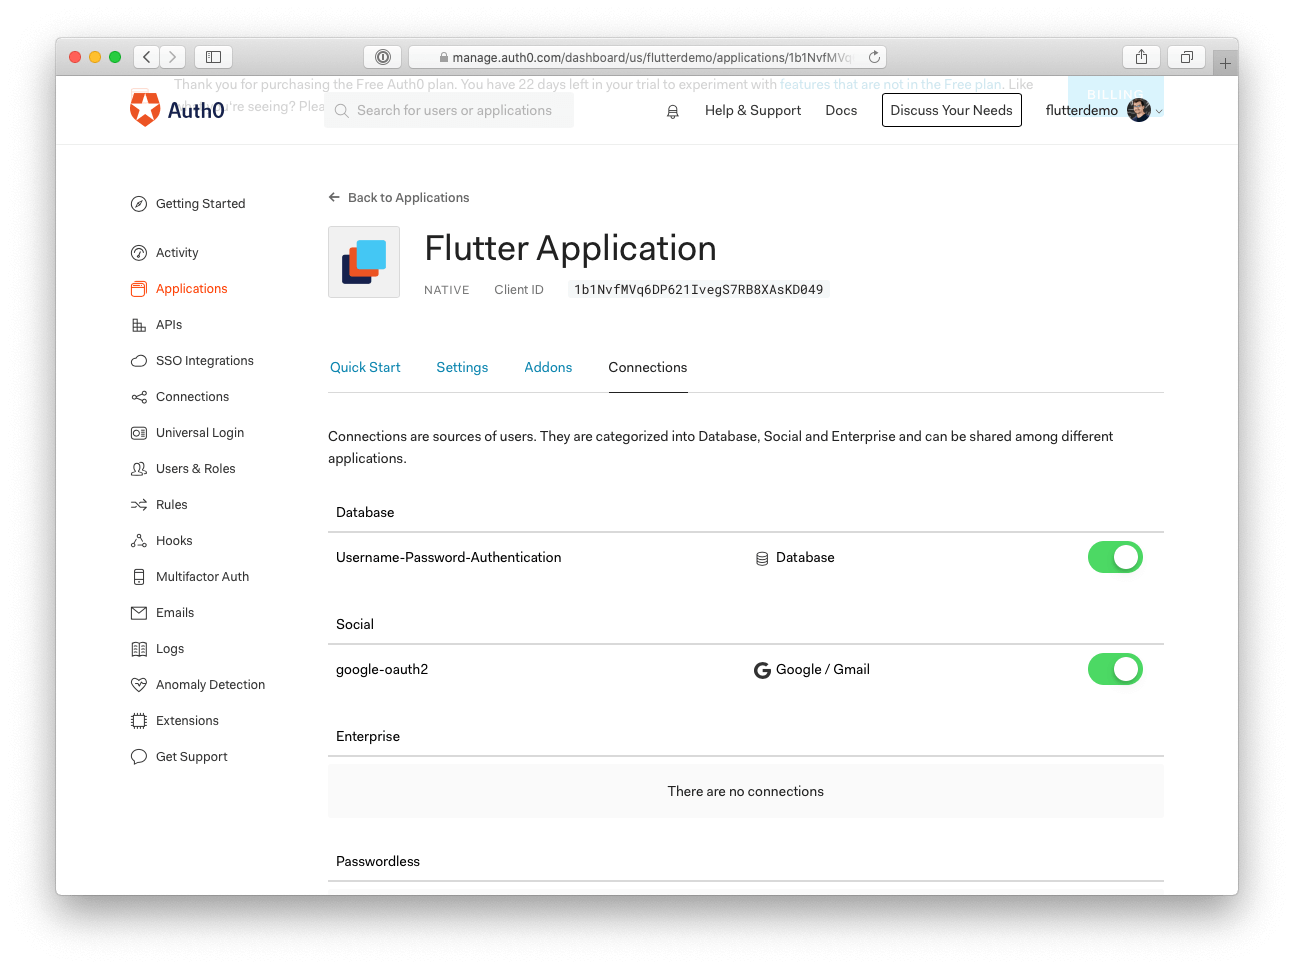 Auth0 connections for Flutter apps